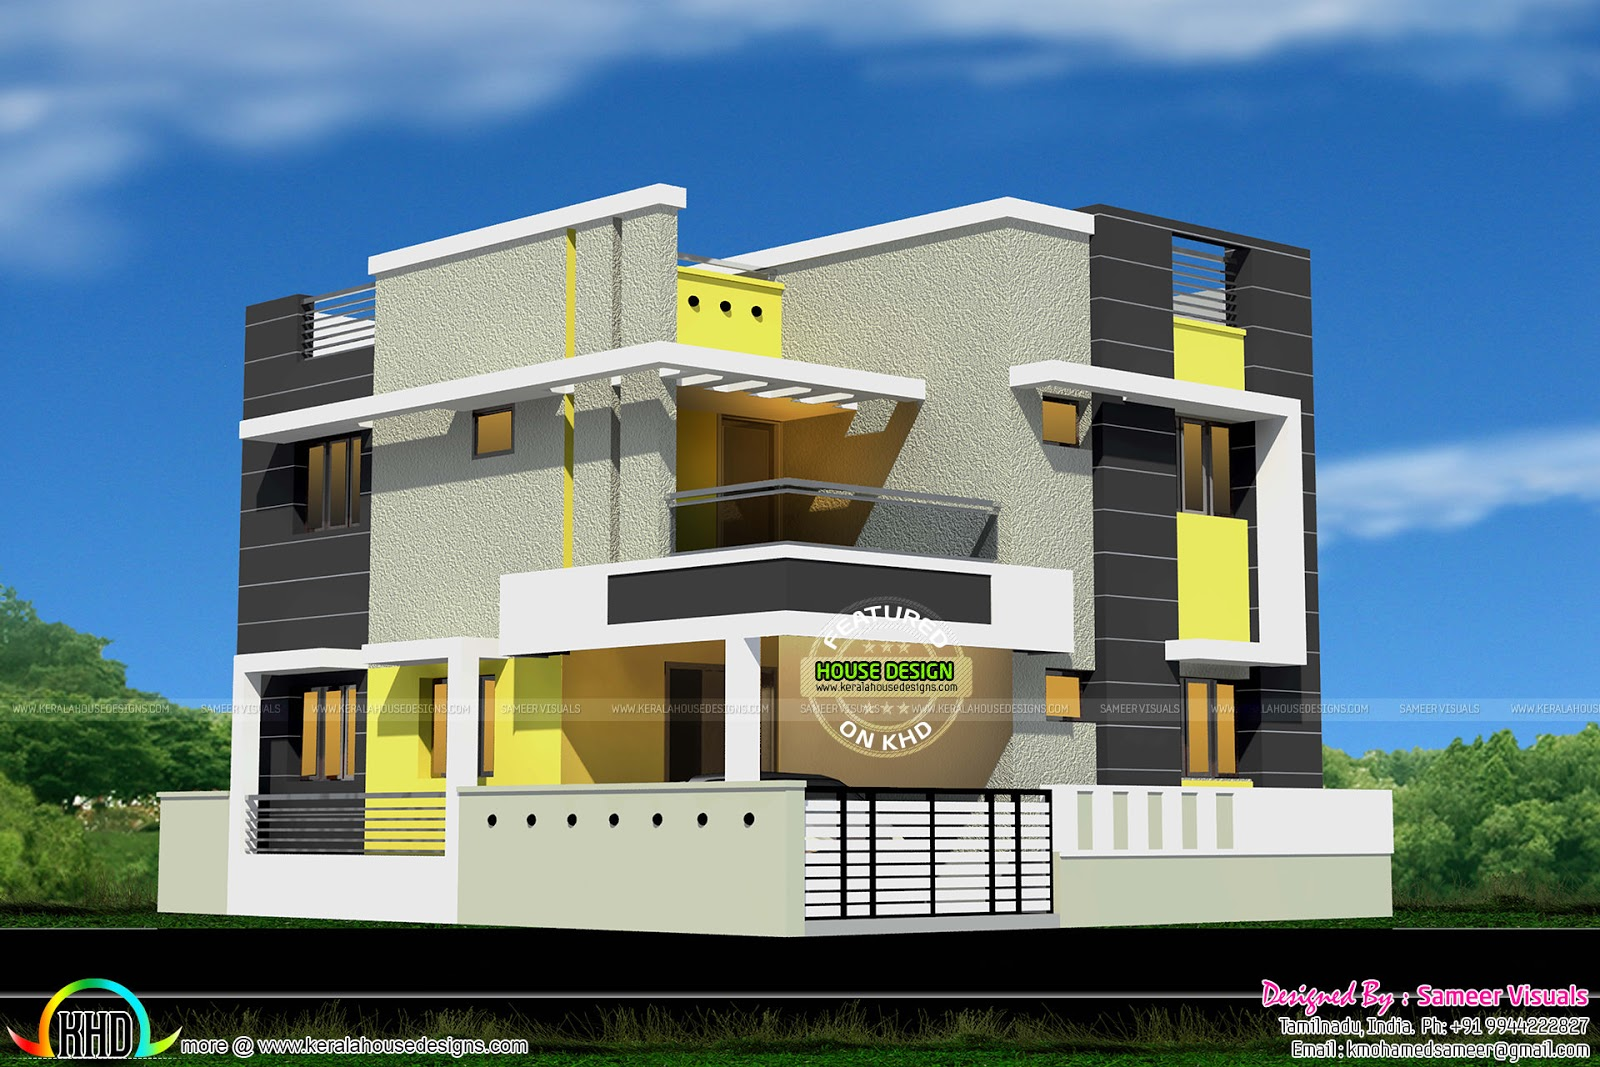 New modern house design kerala home design and floor plans for Home designs in tamilnadu